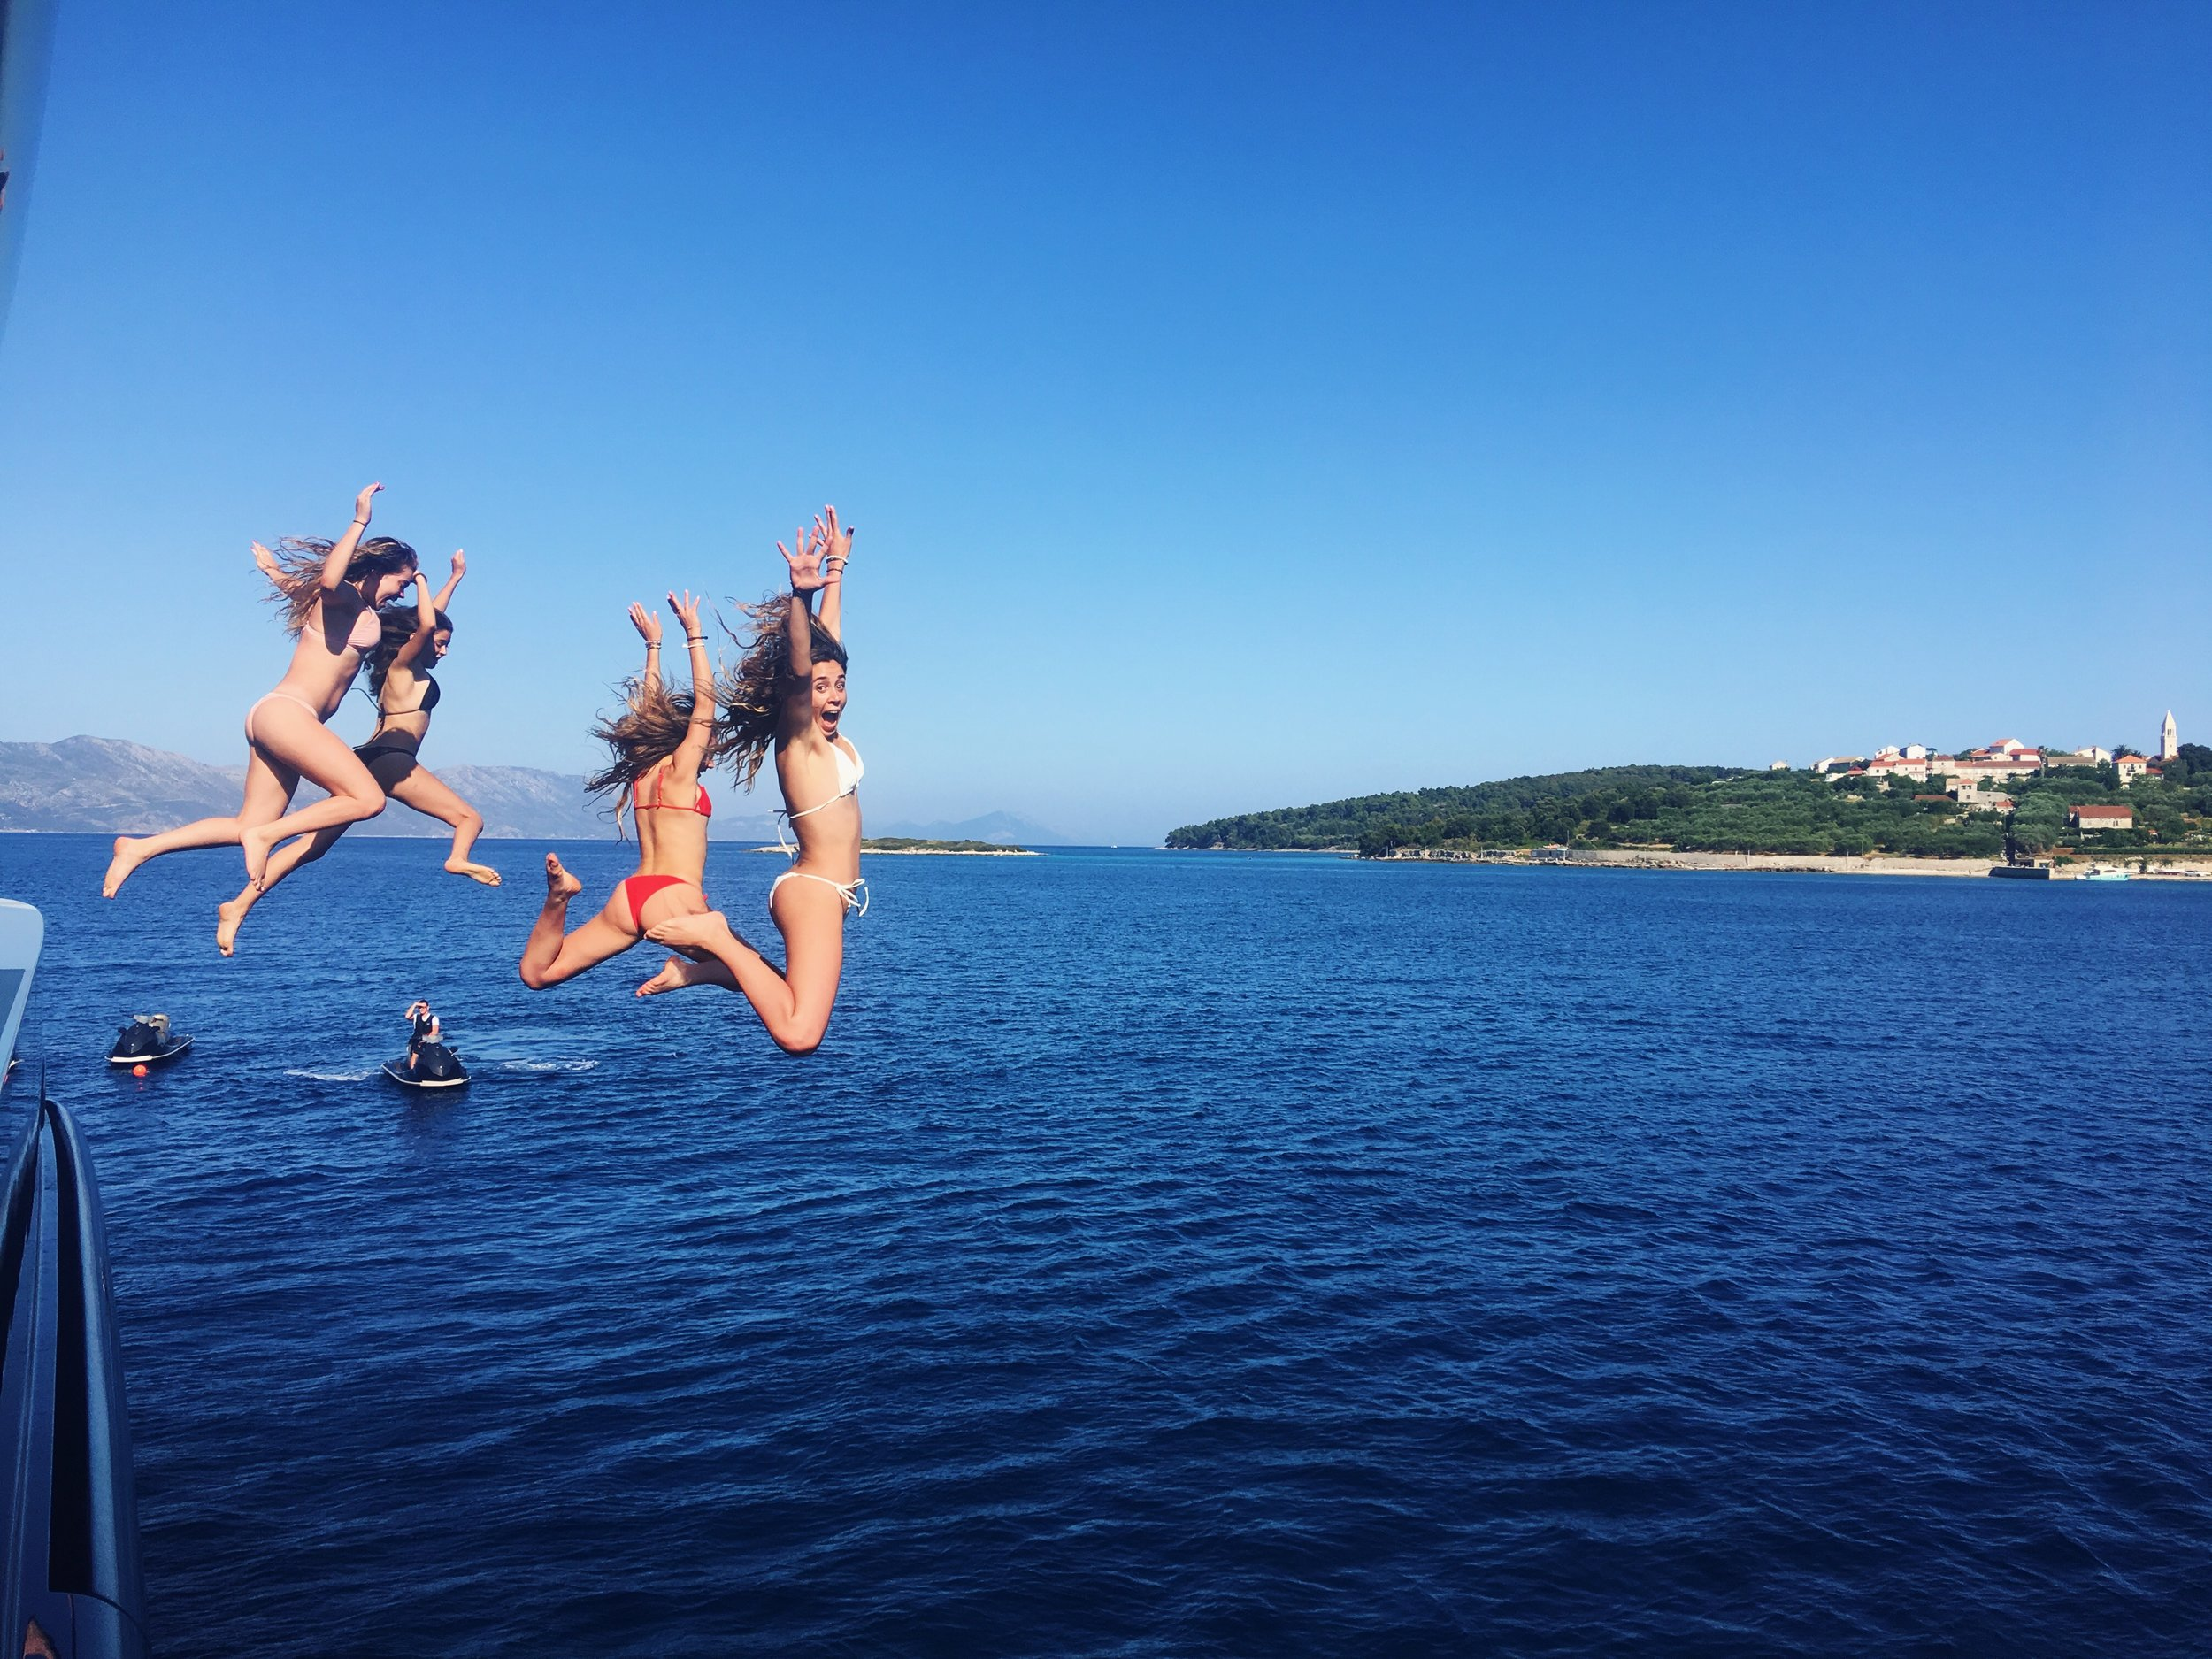 Jumping off the boat is one of my favorite excursions.